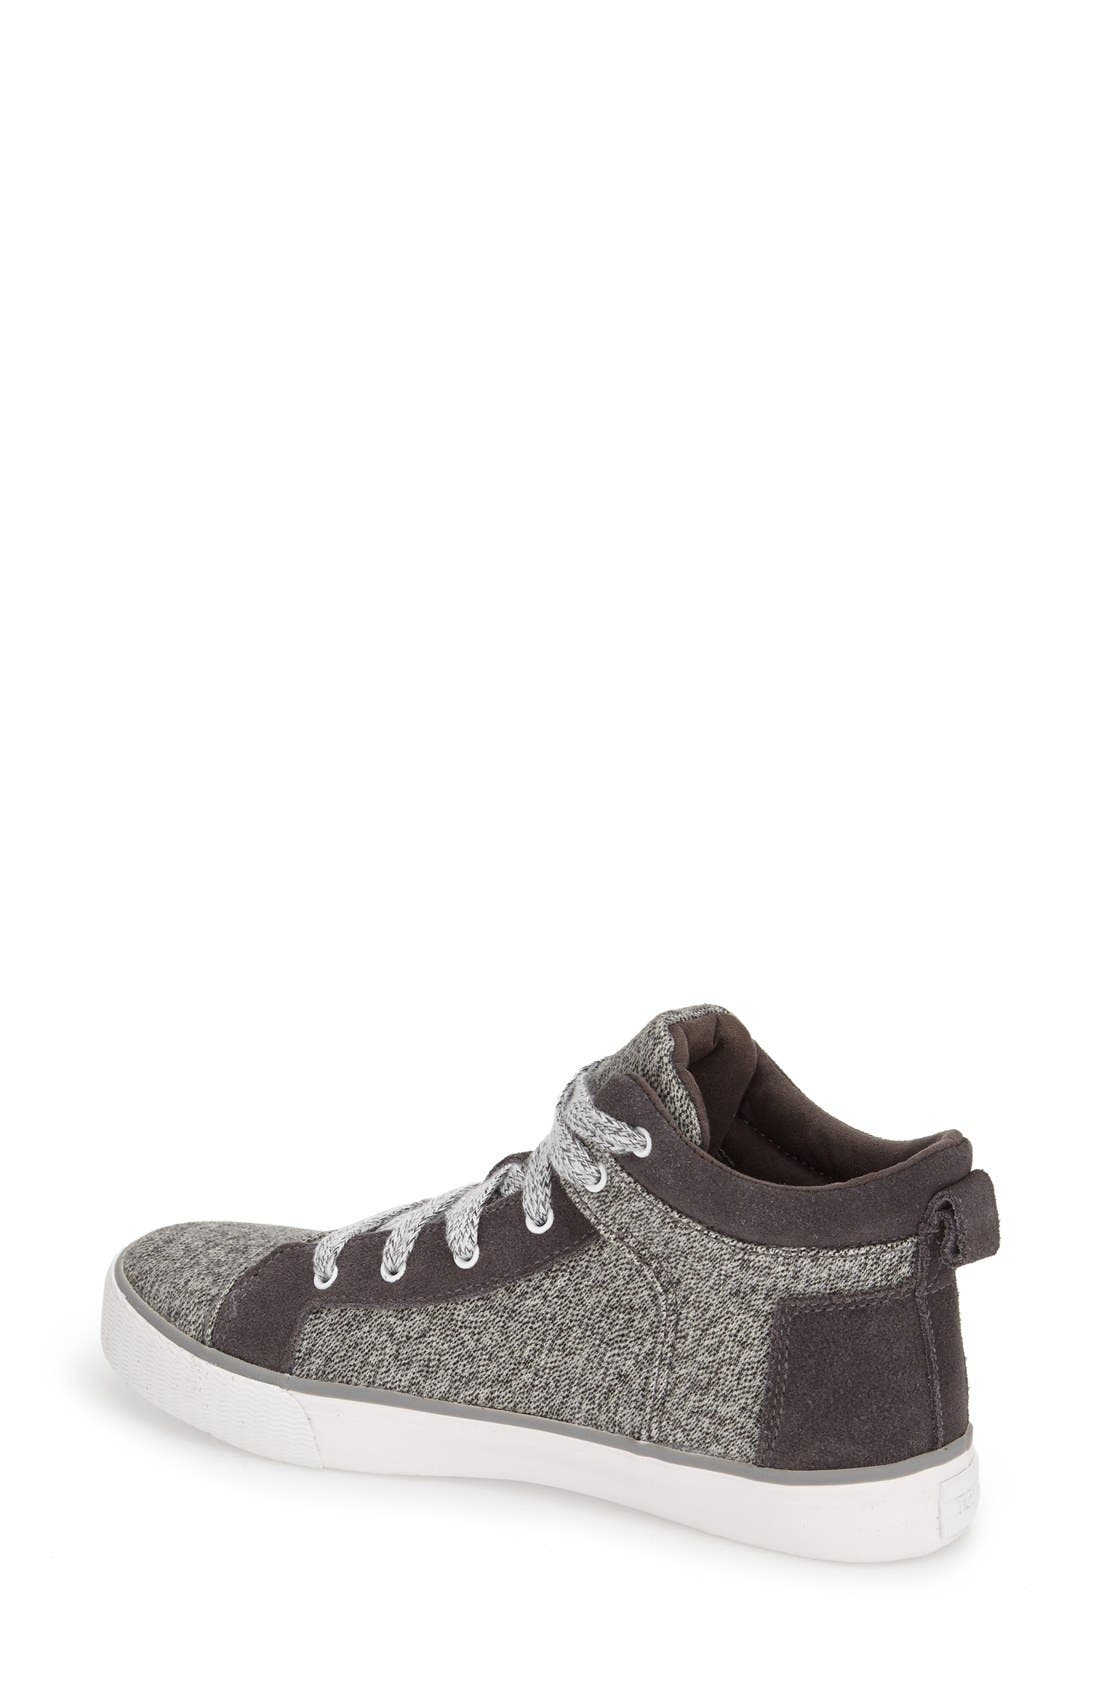 Alternate Image 2  - TOMS 'Camila' High Top Sneaker (Women)